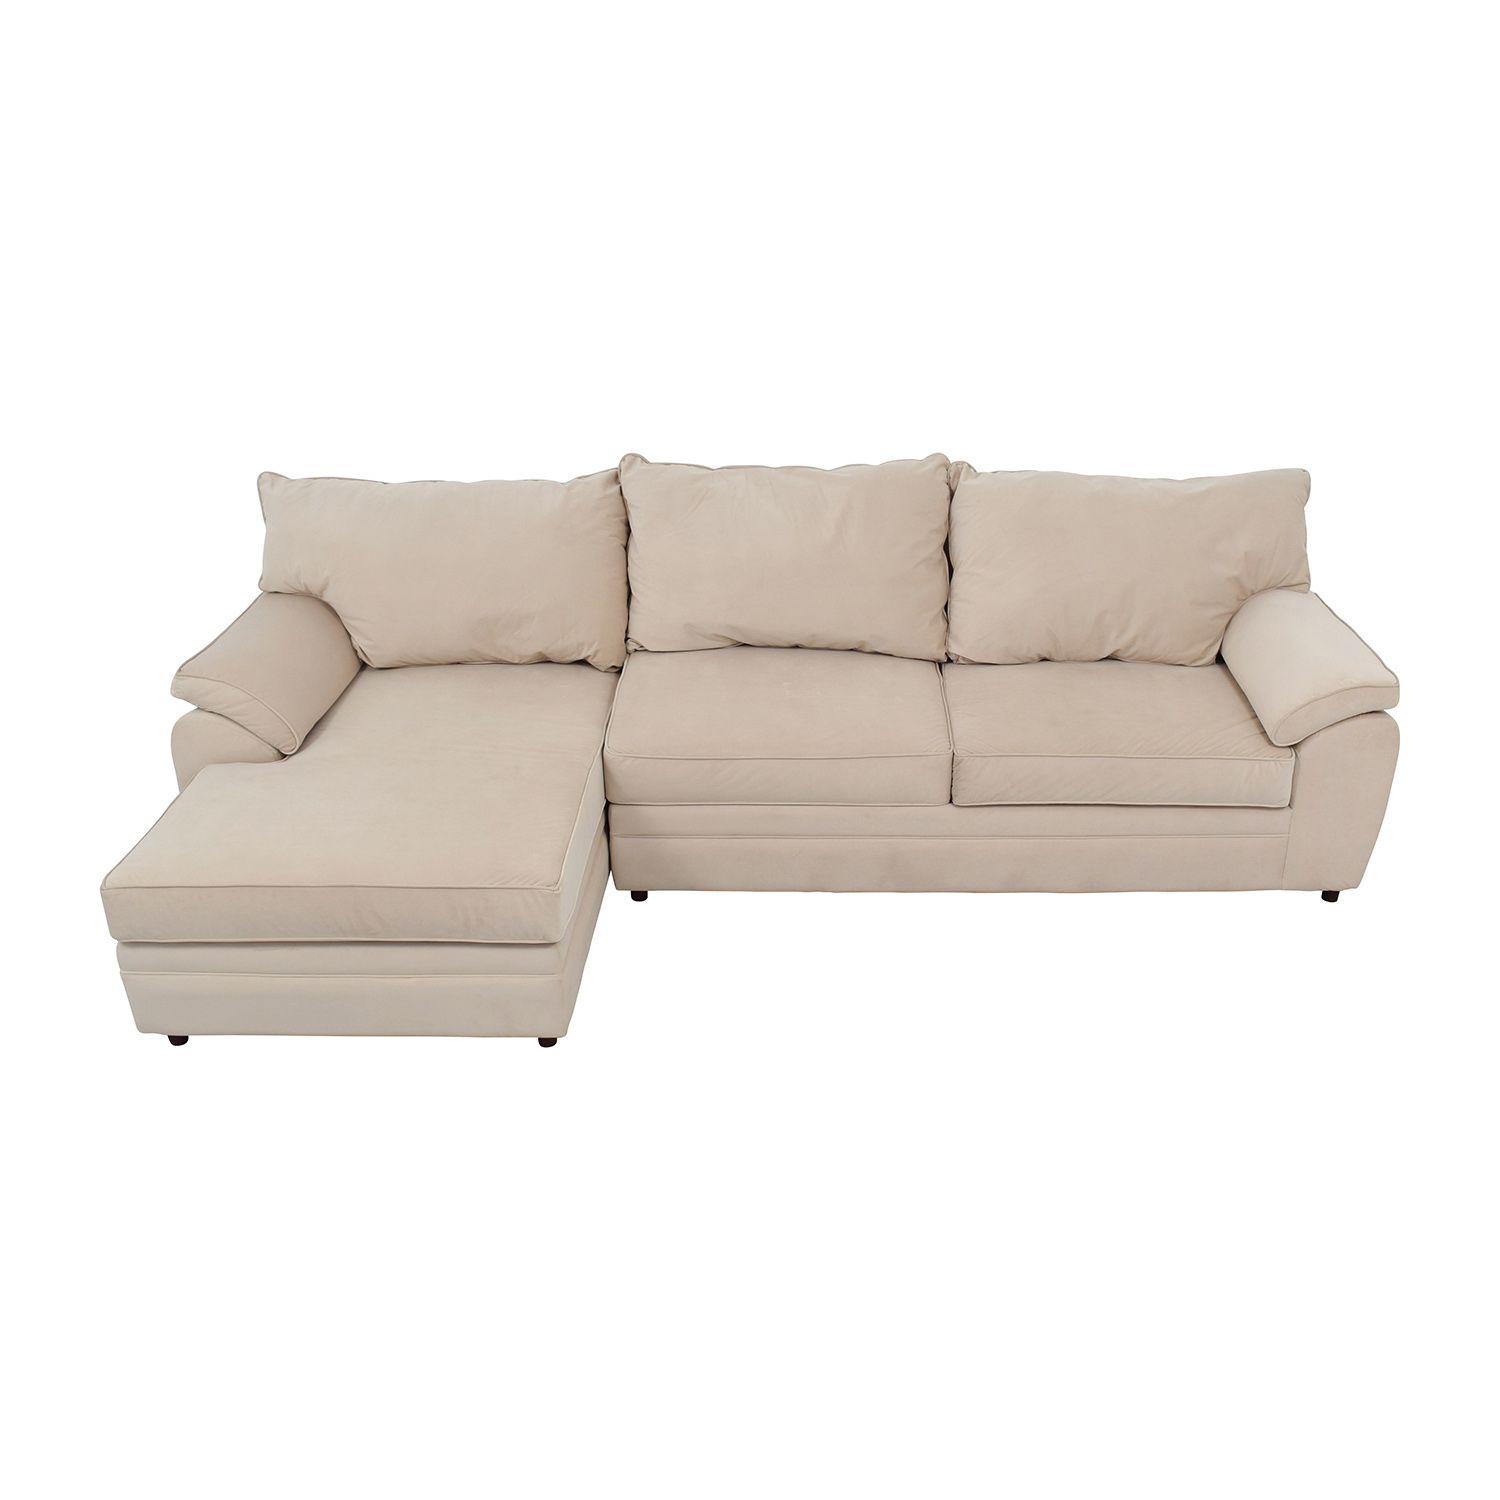 Bobs Furniture Bob Furniture Off-White Right Chaise Sectional nyc